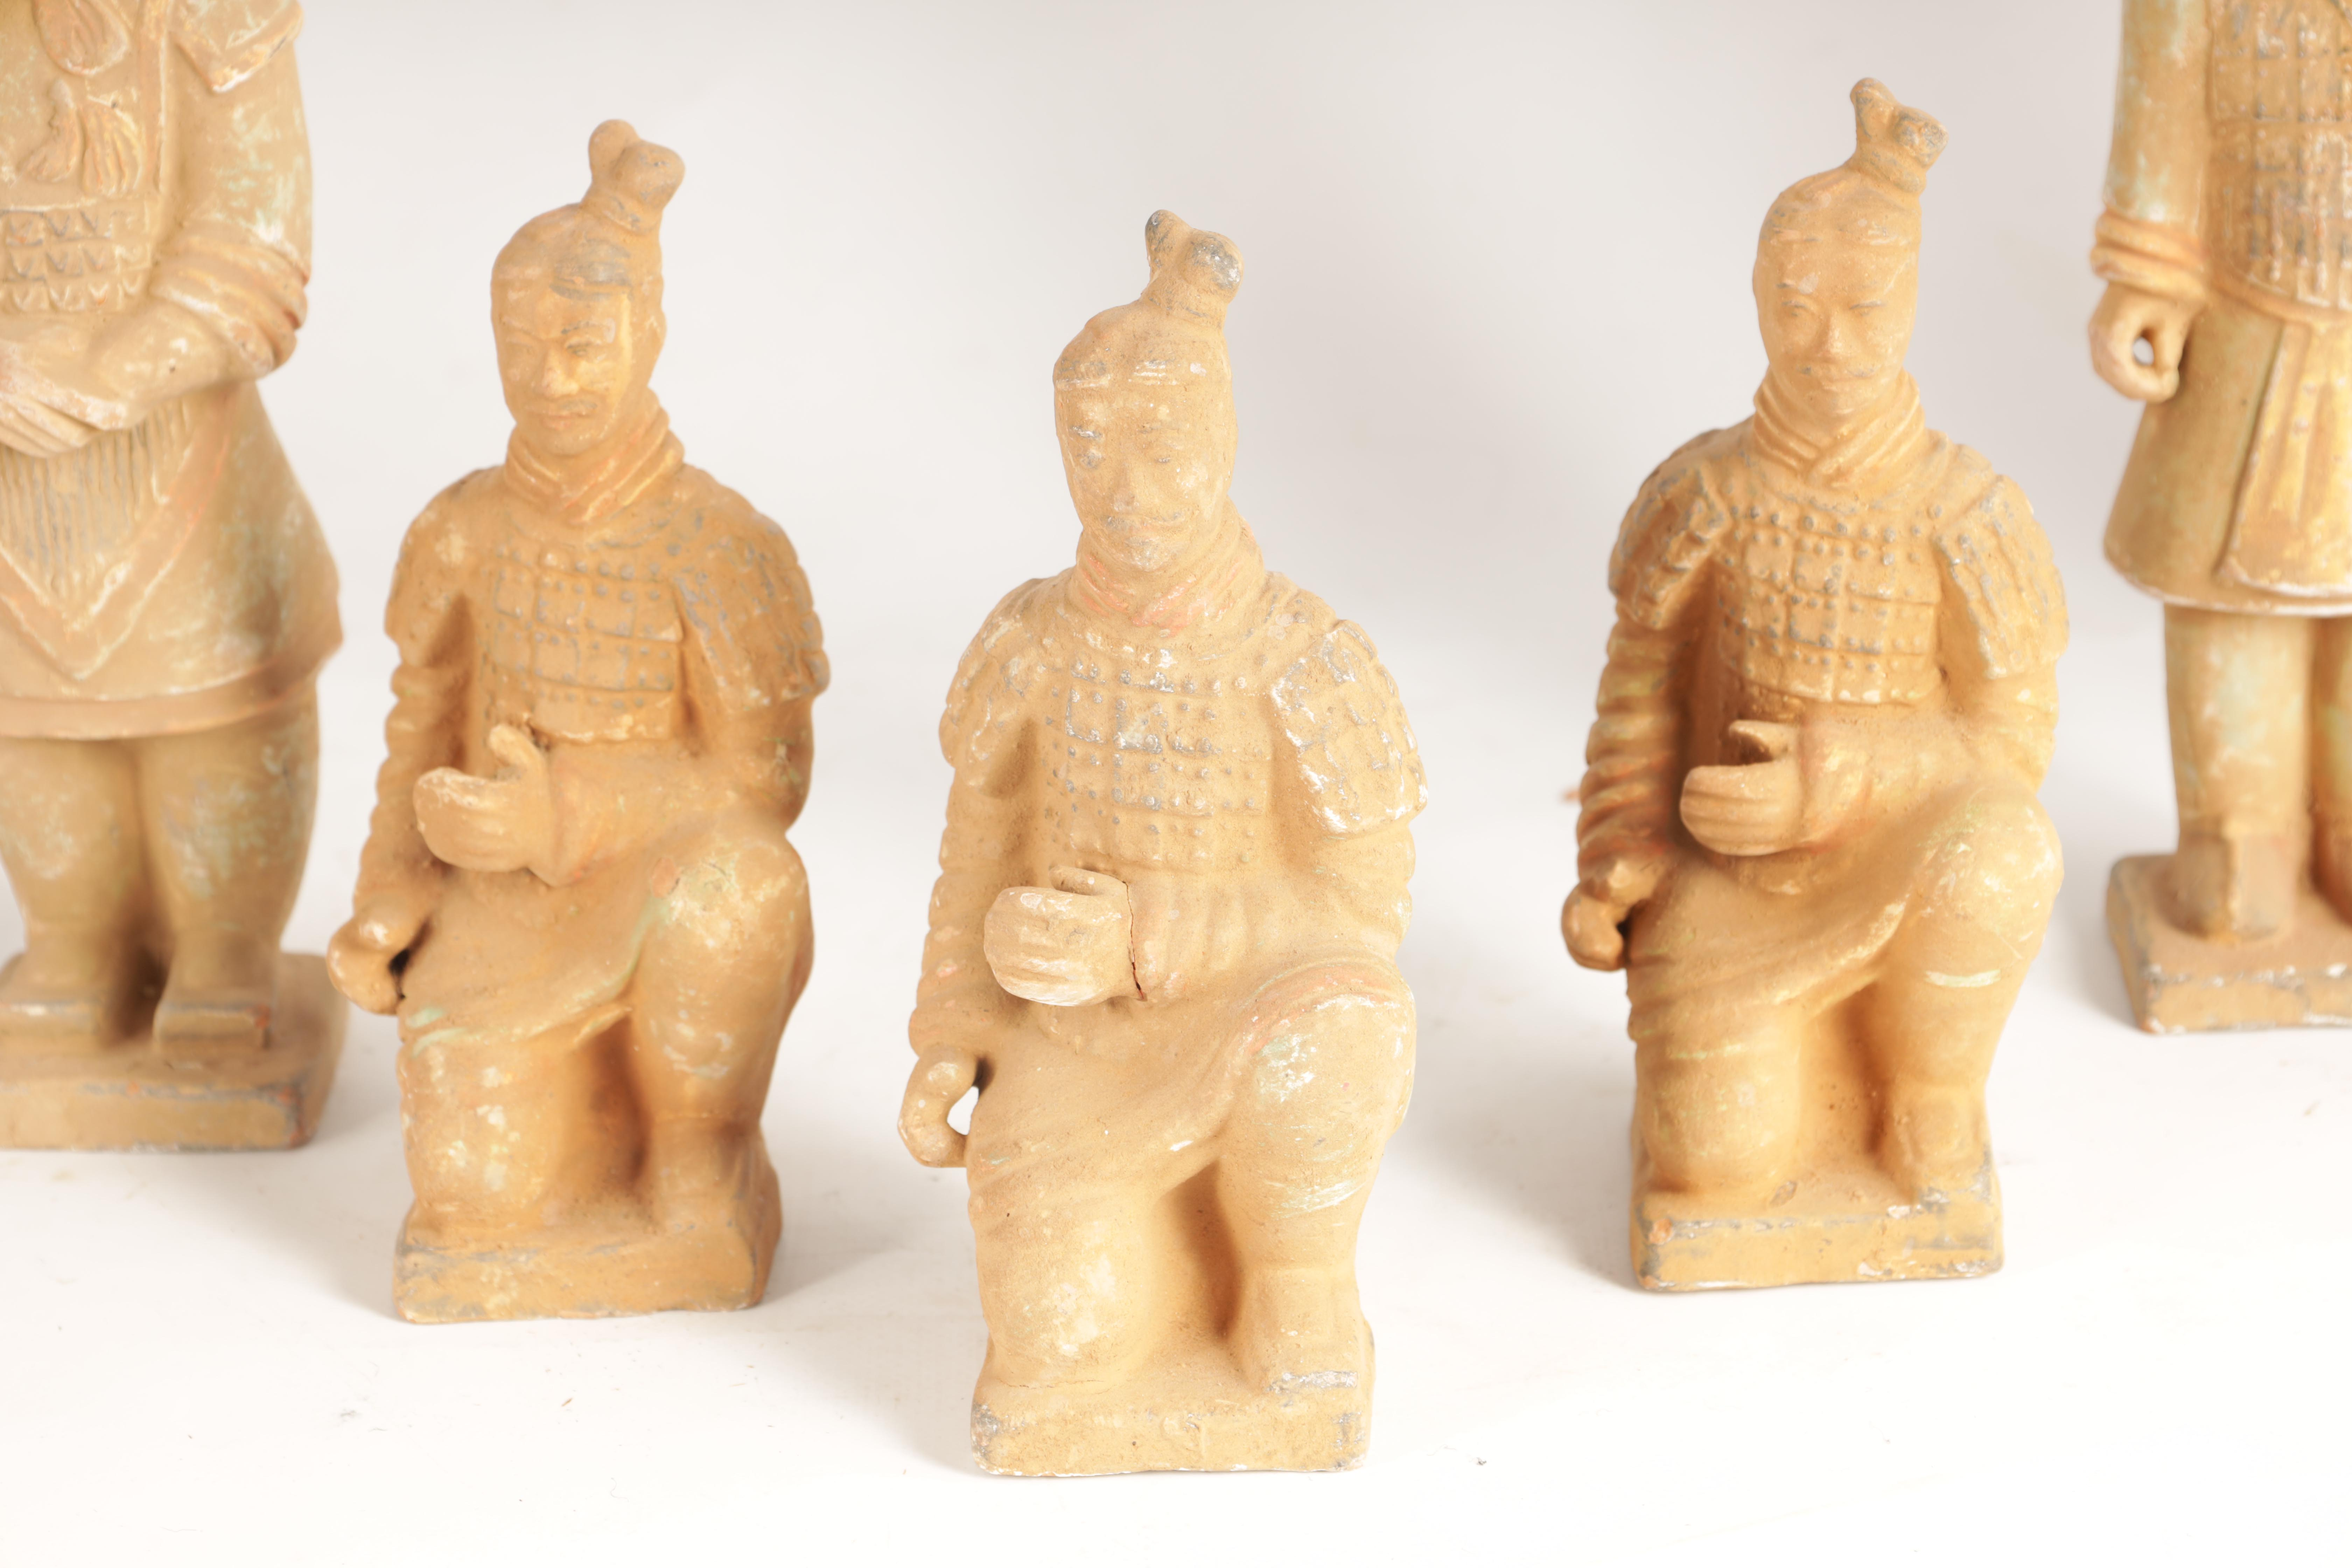 A SET OF 12 20TH CENTURY CHINESE FIGURES MODELLED AS THE TERRACOTTA ARMY depicting soldiers in - Image 5 of 7